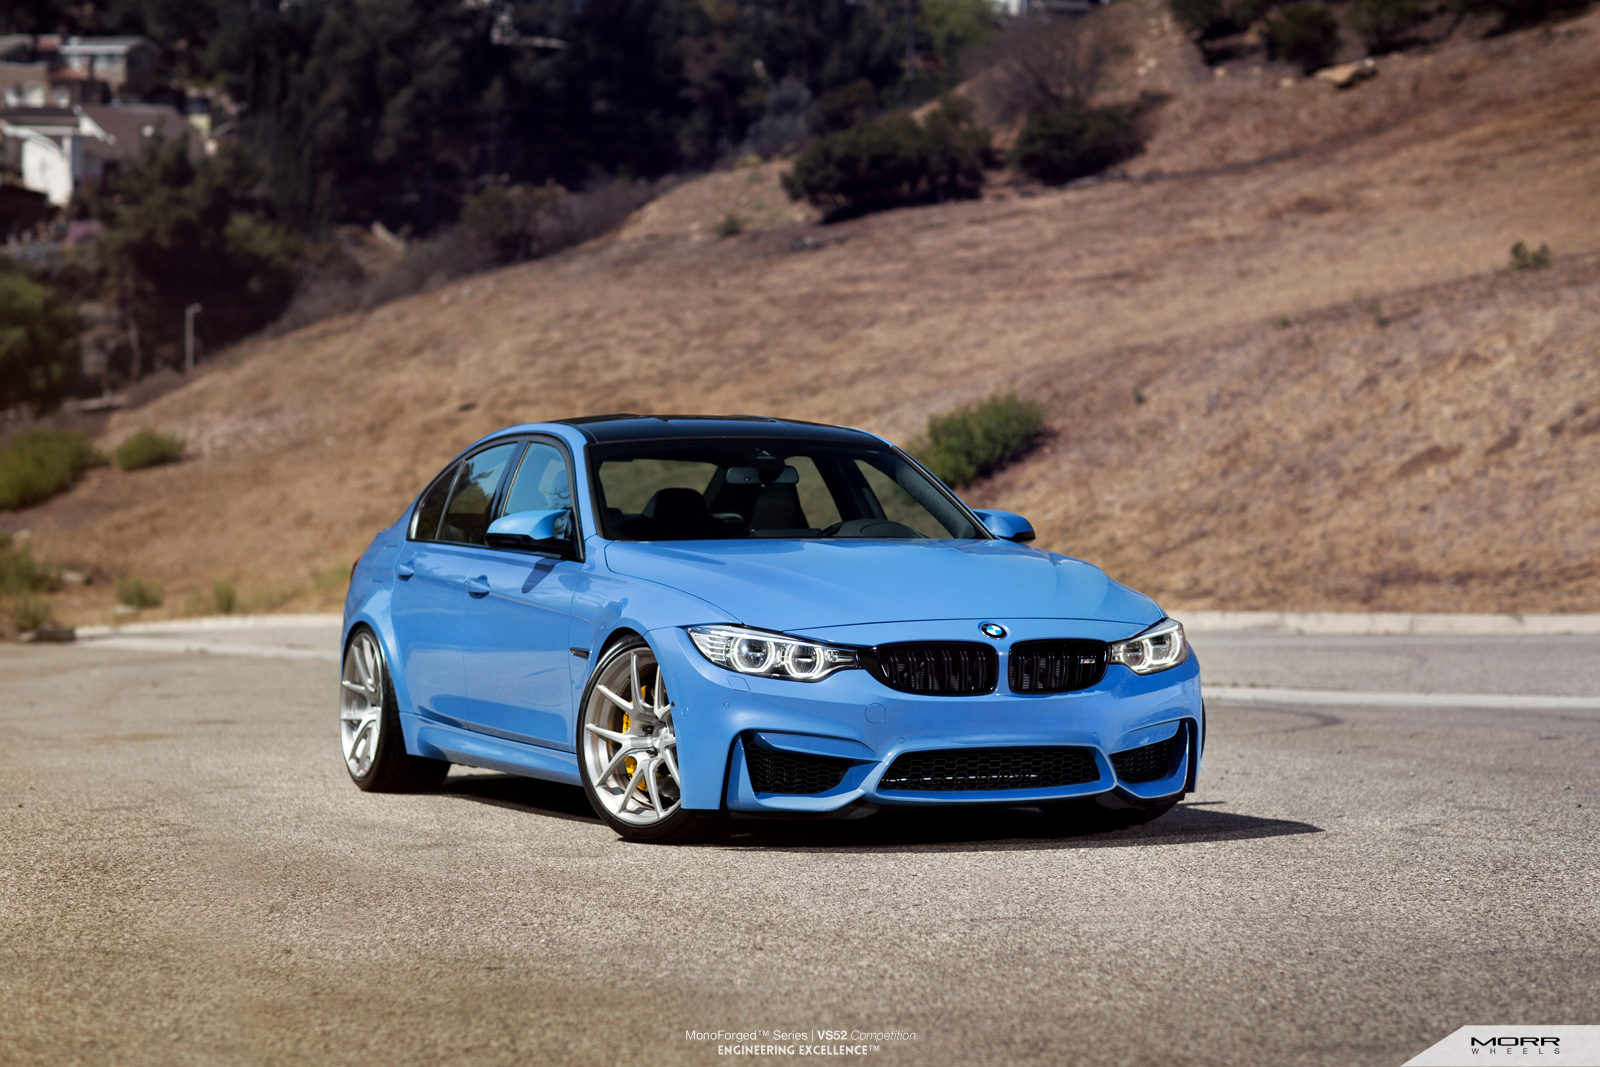 Bmw F80 M3 On Morr Vs52 Wheels And Full Tuning